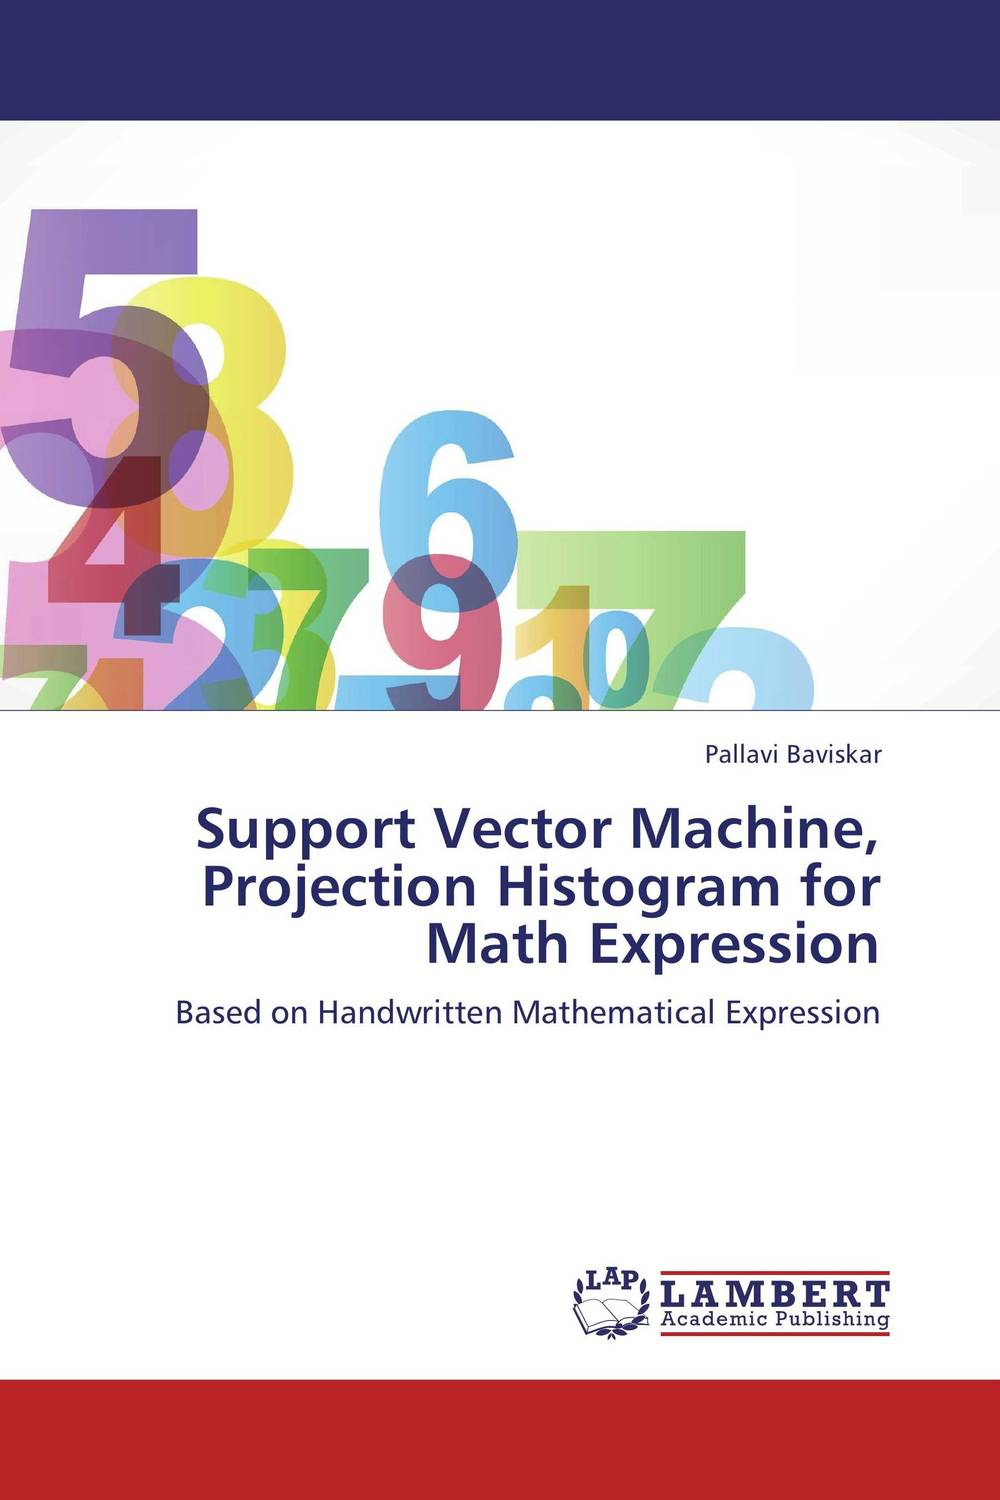 Support Vector Machine, Projection Histogram for Math Expression neetu sharma and paresh rawat efficient cbir using color histogram processing